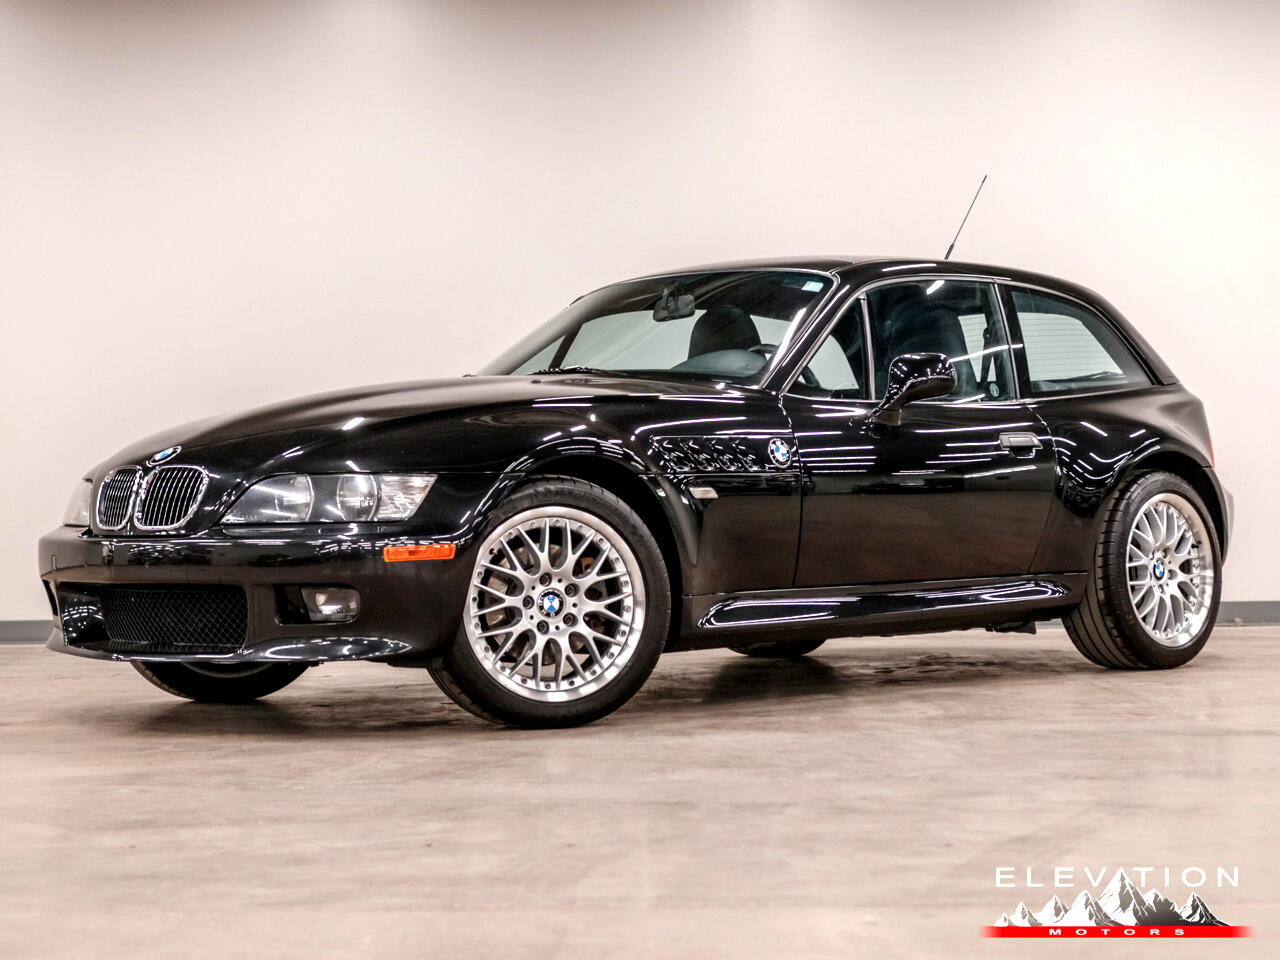 BMW Z3 Coupe 3.0i 2001